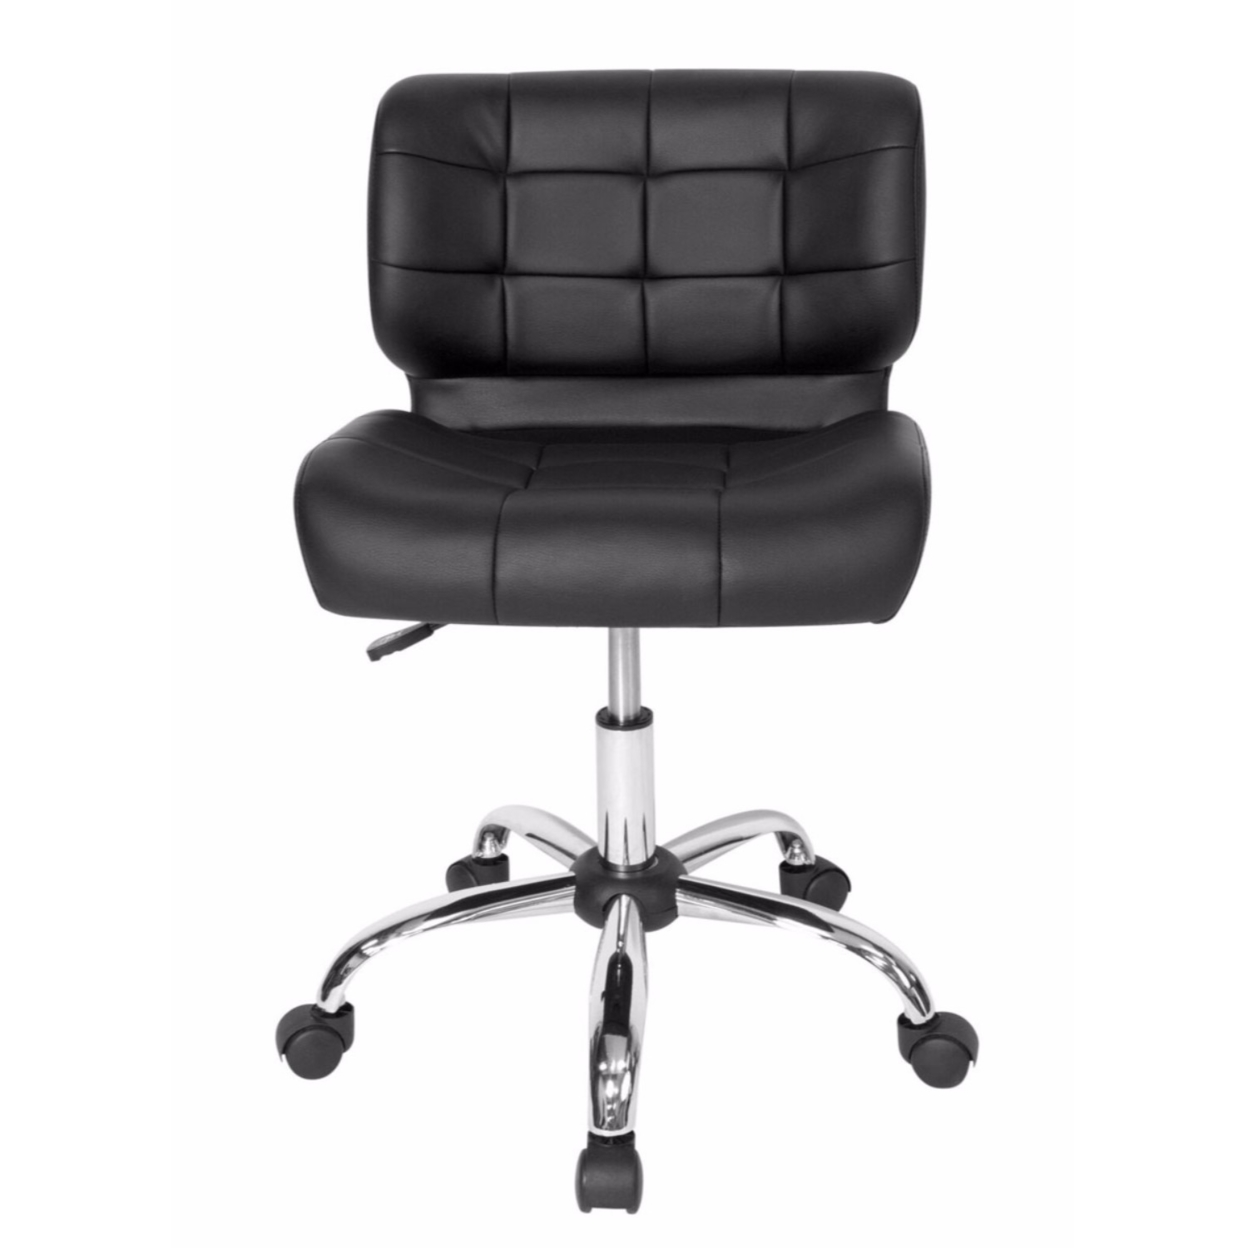 Offex Home Office Black Crest Office Chair - Chrome/Black offex home office plinth ottoman latte